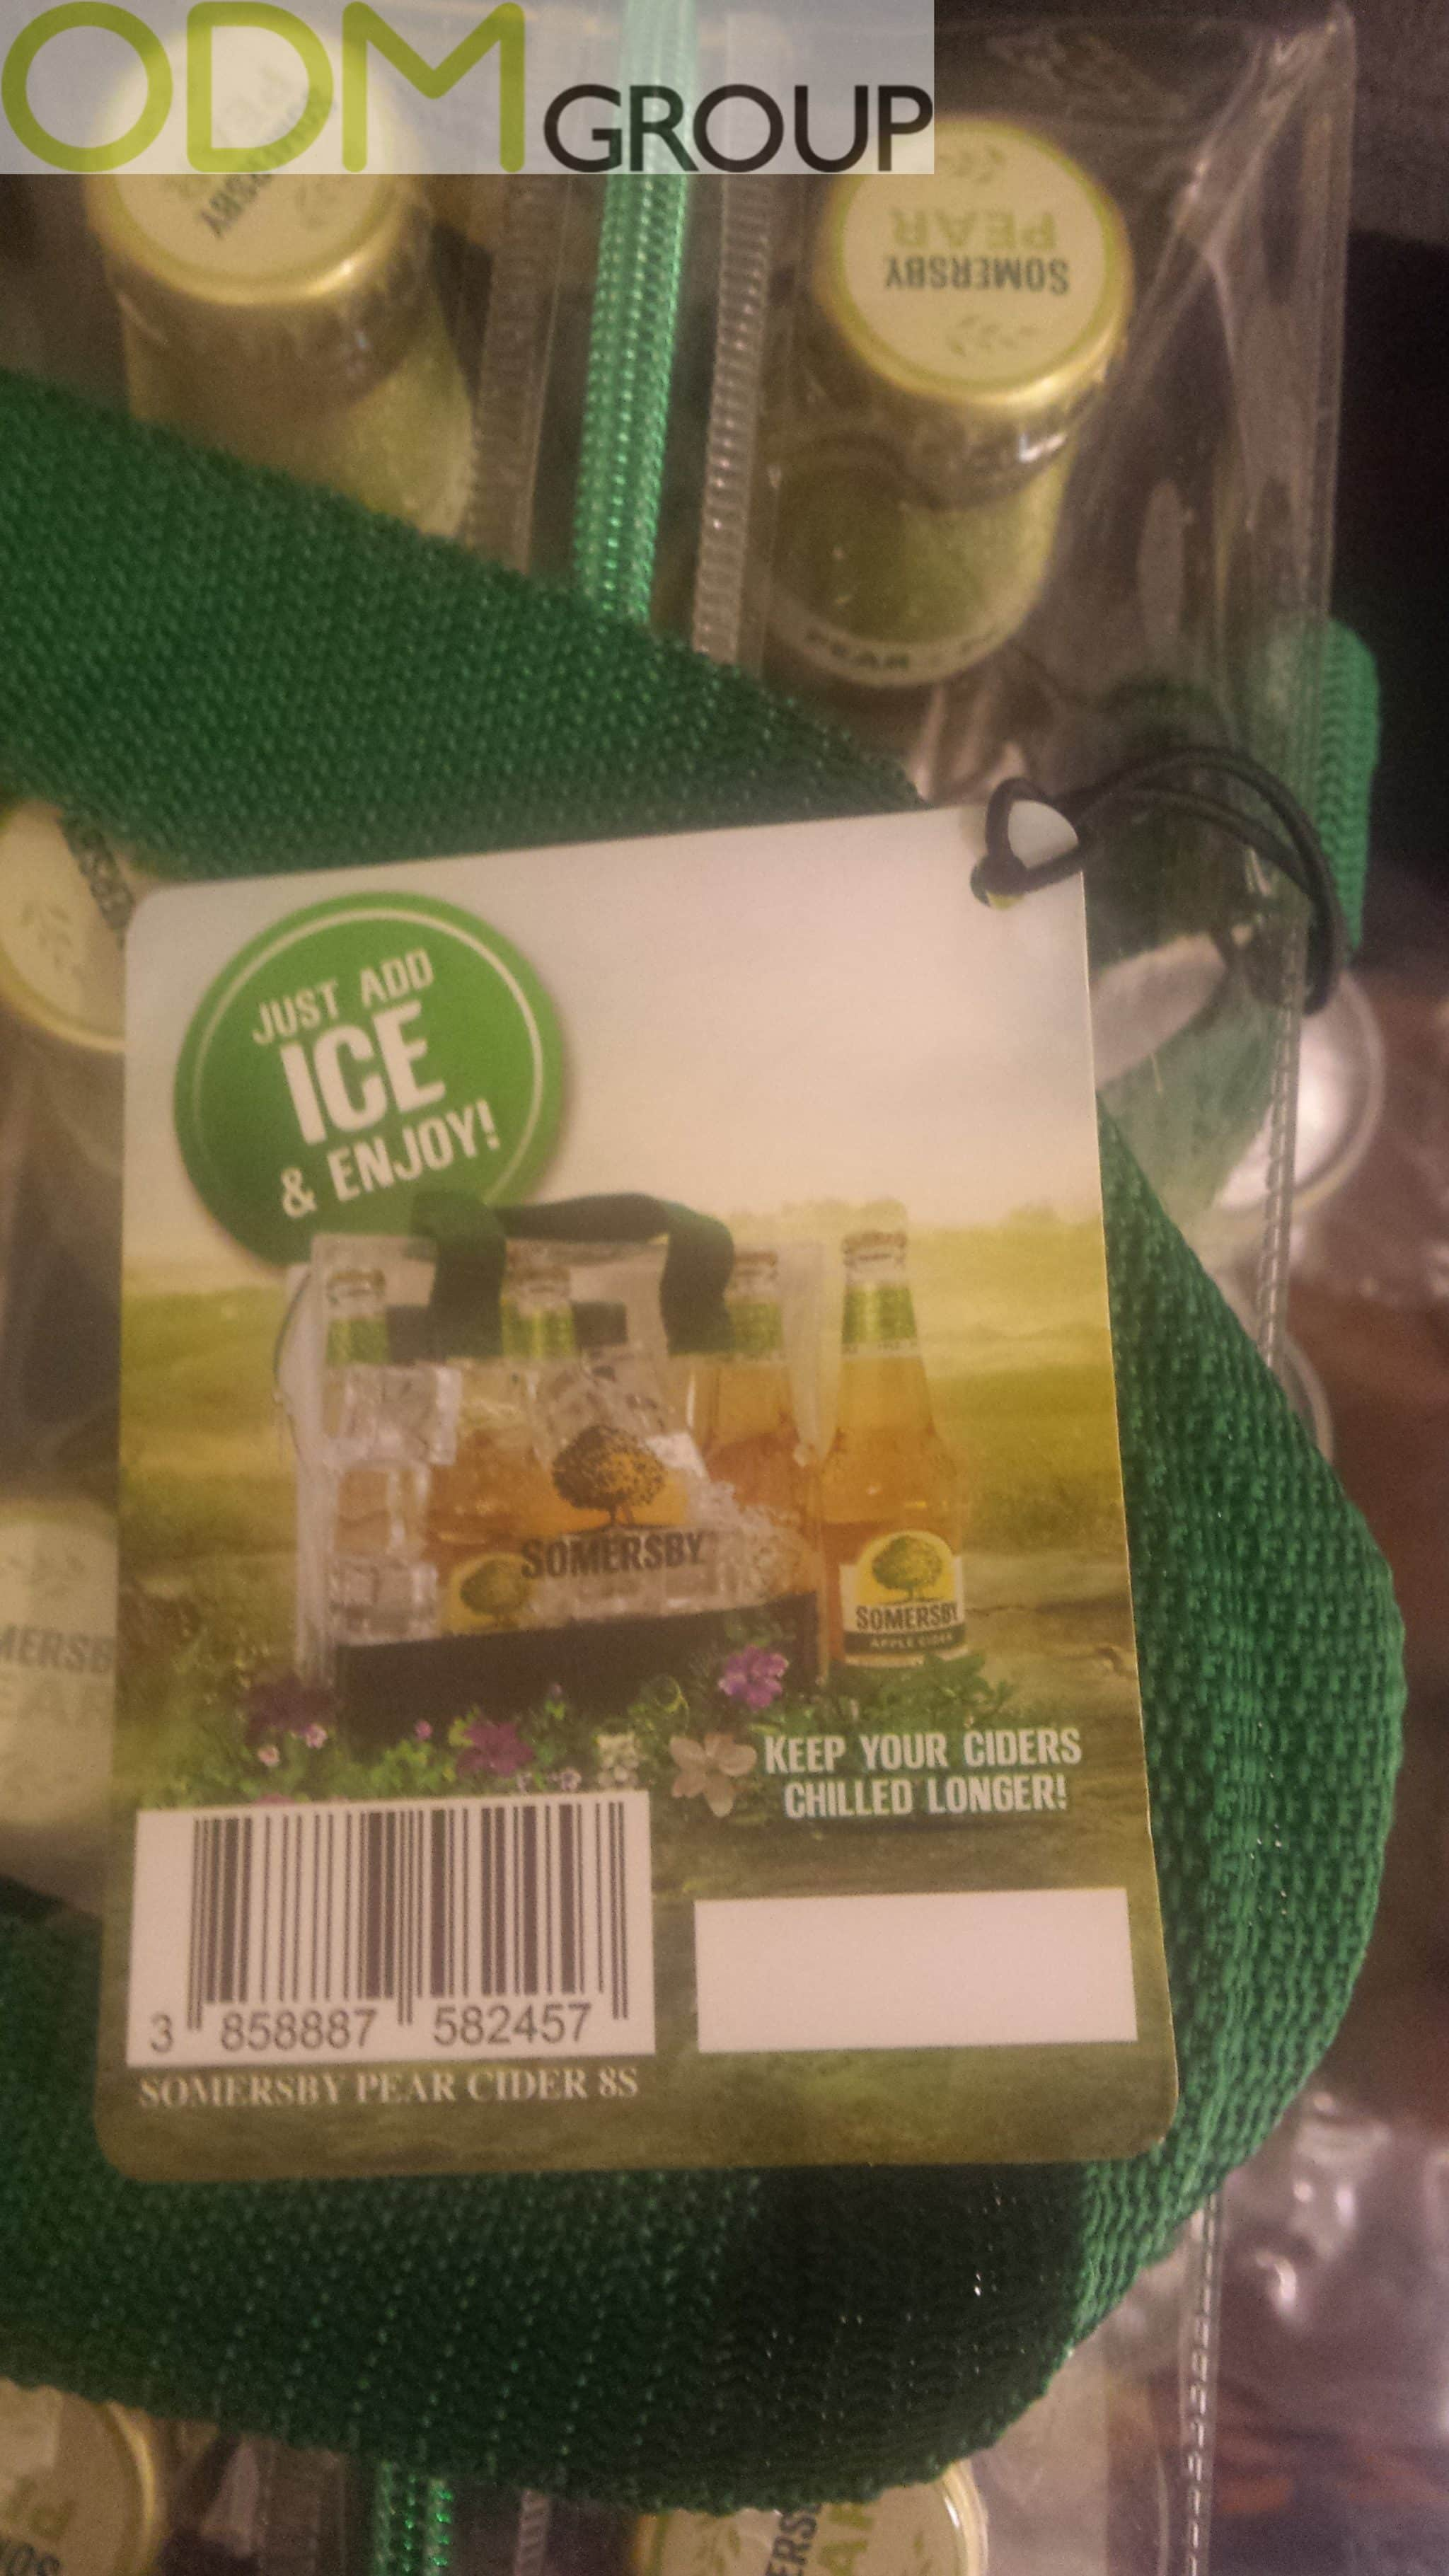 St Paddy's Promo: Sumersby Cider Cooler Bag